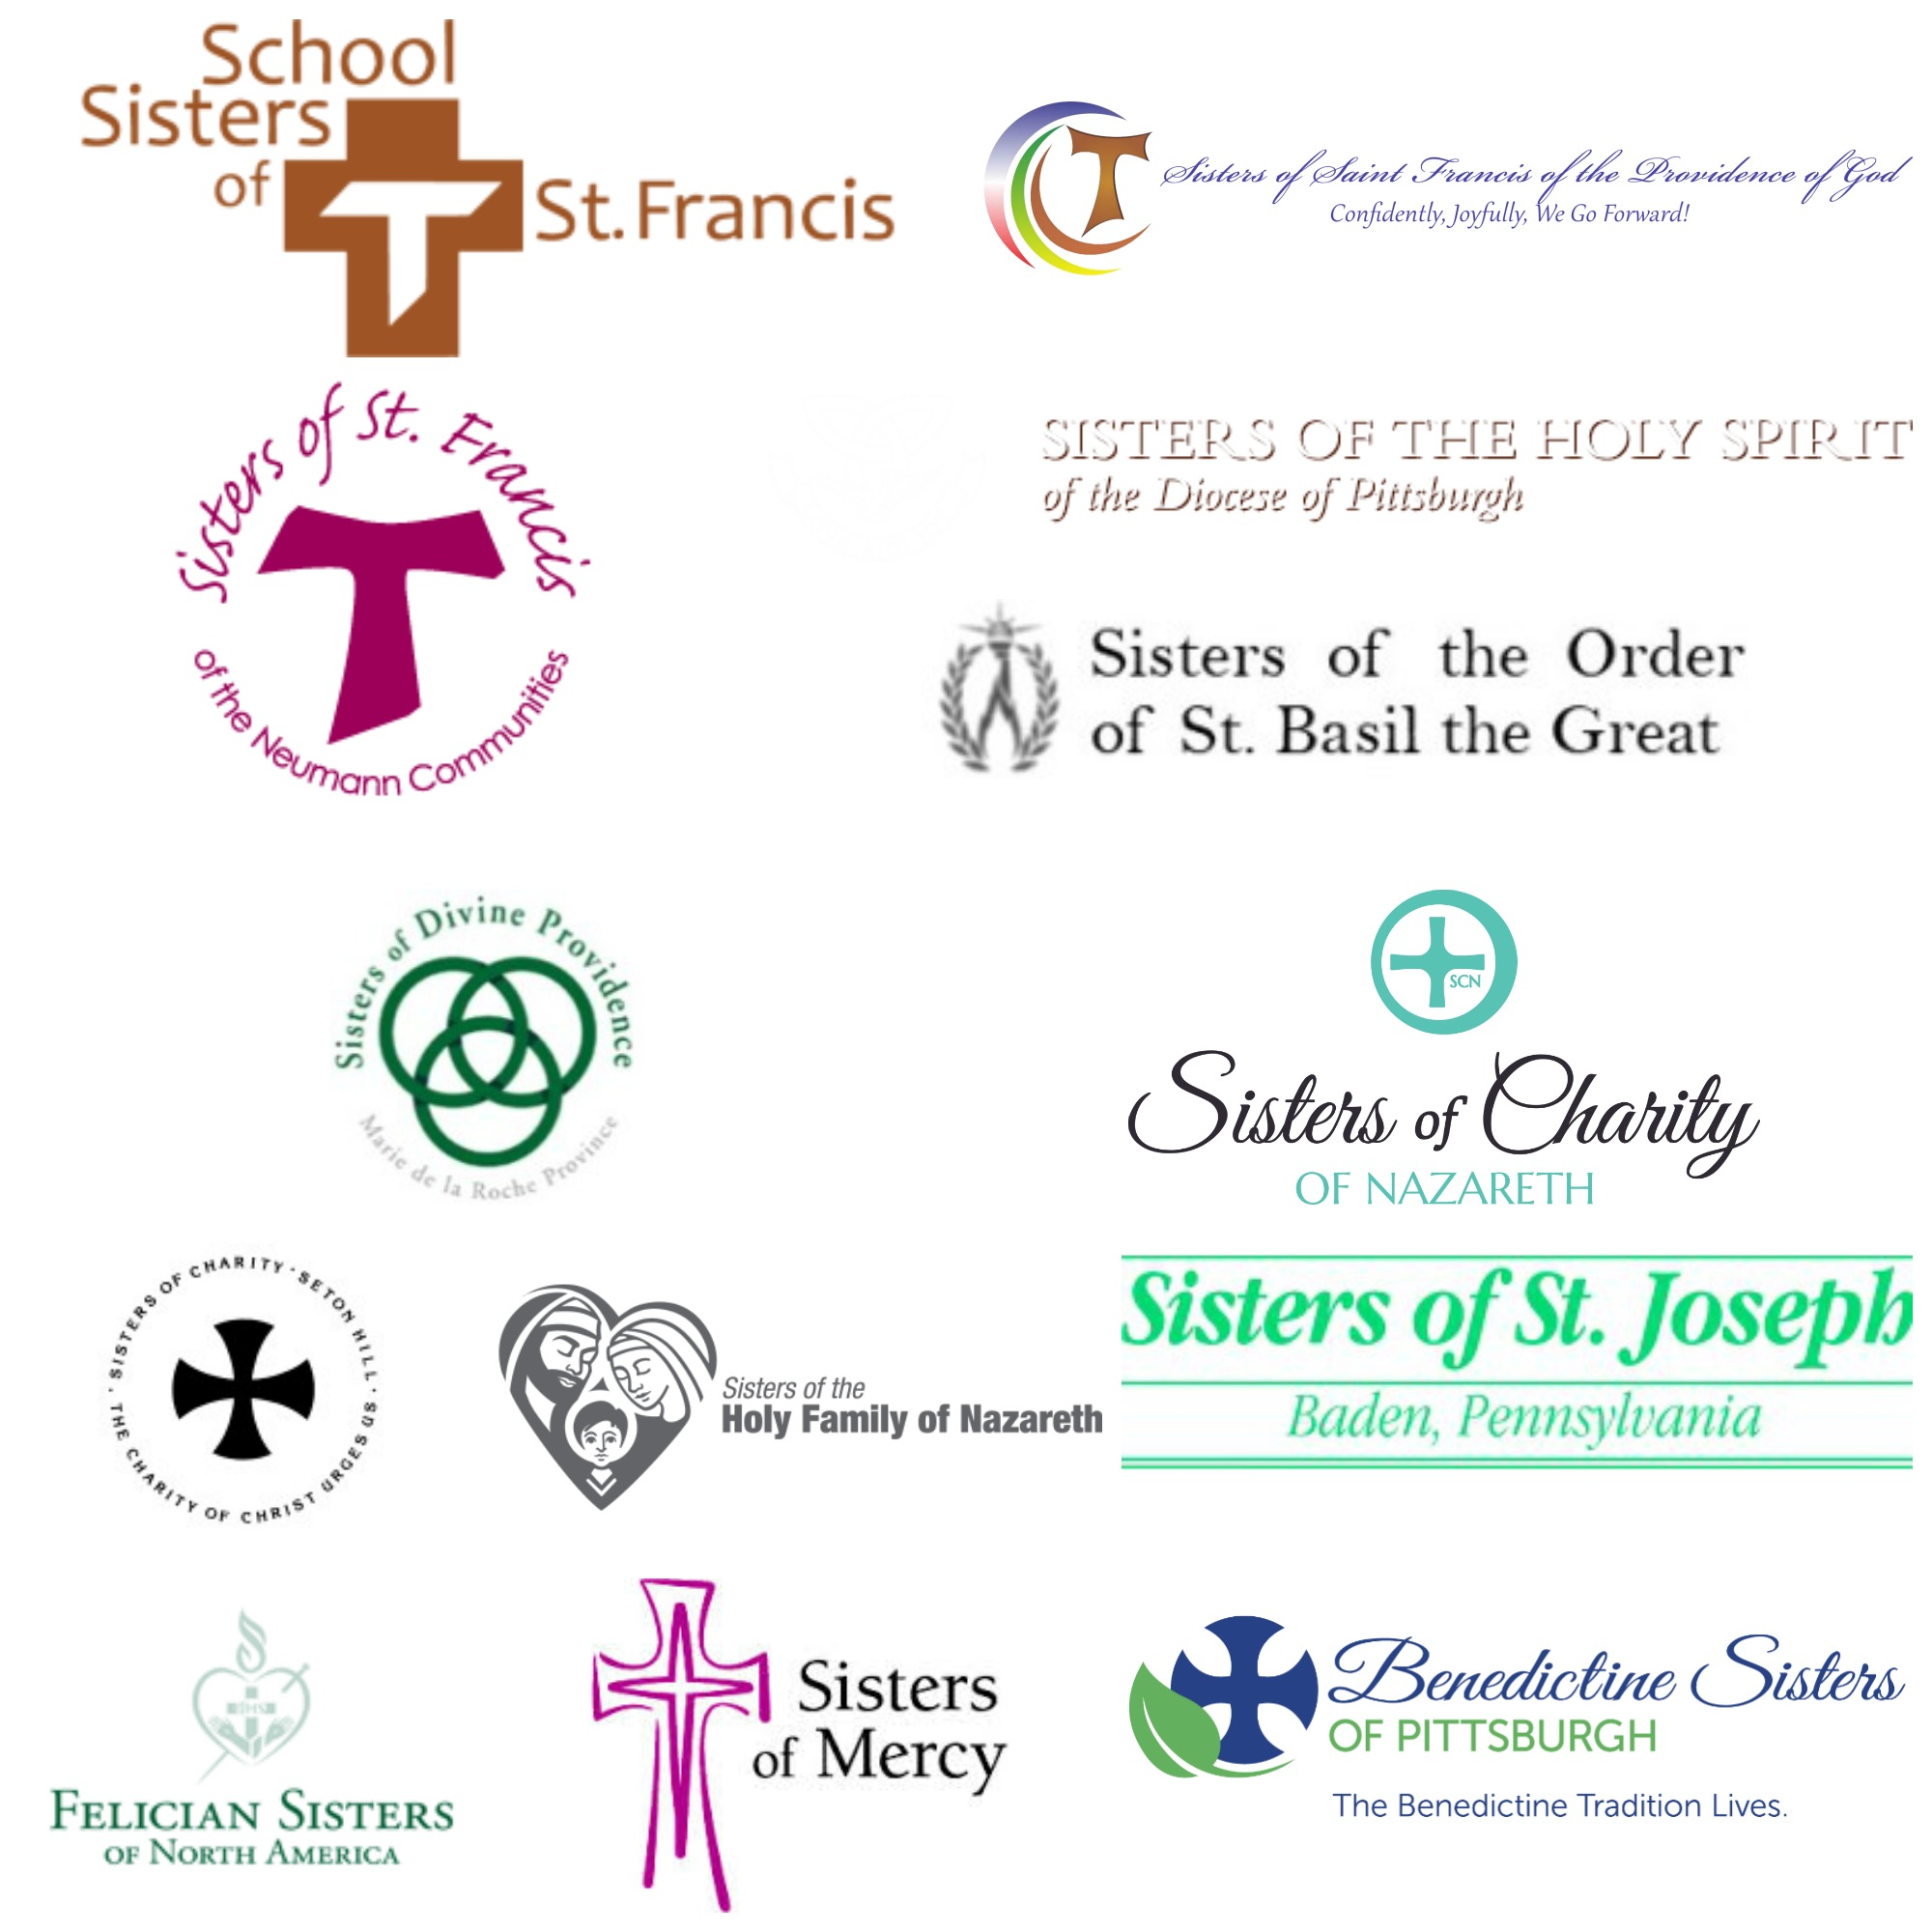 Collection of logos for various founding organizations